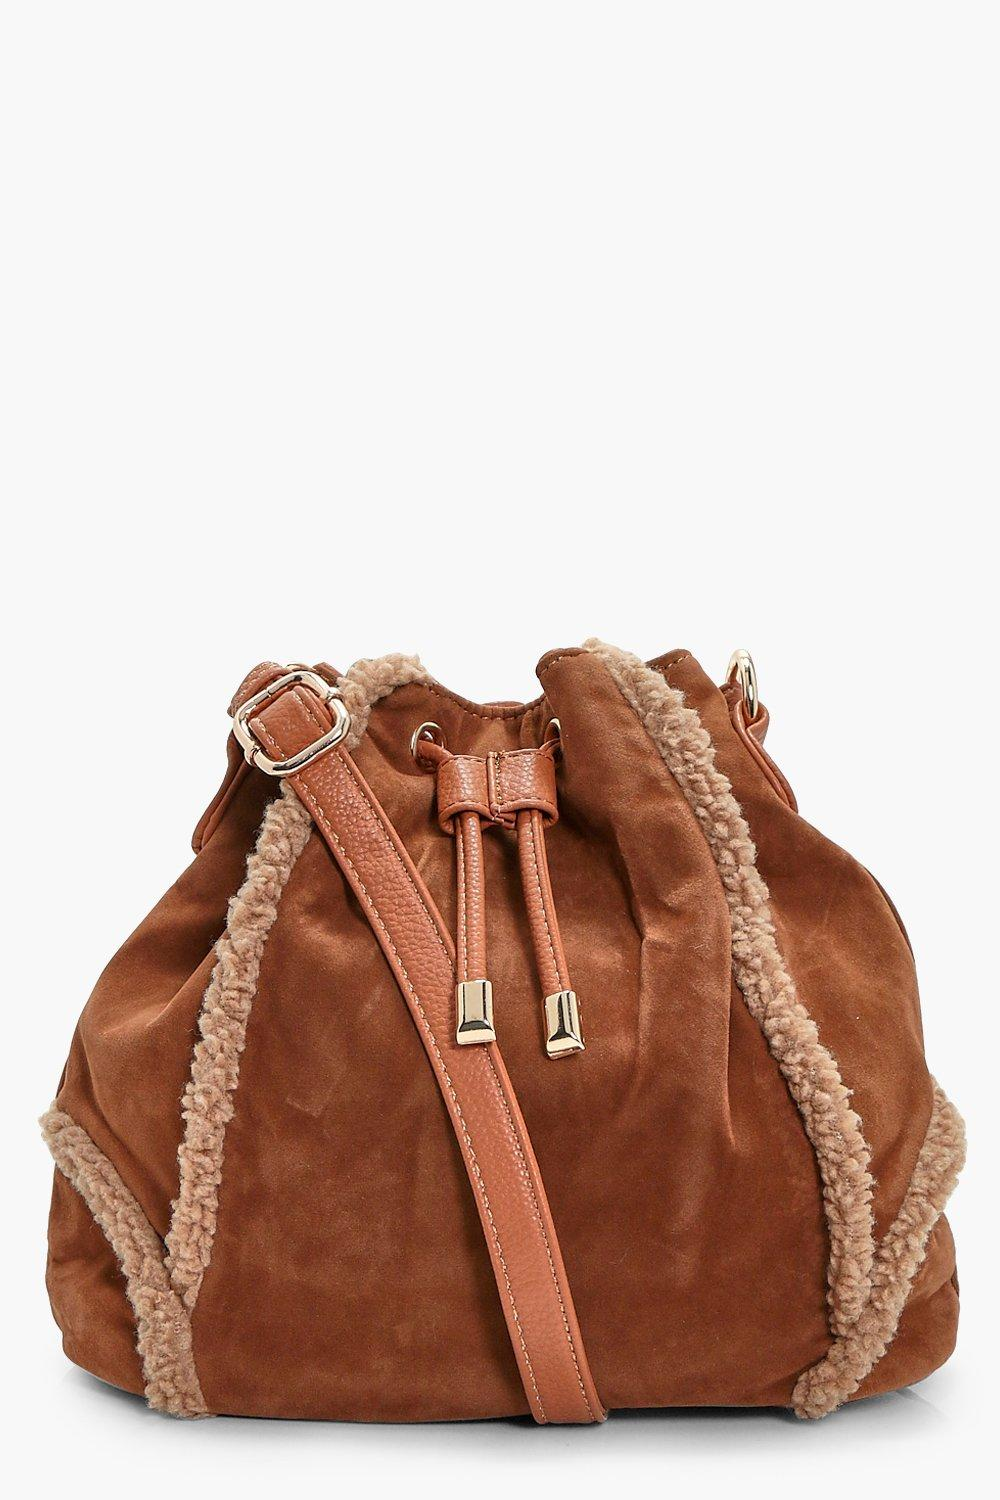 Shearling Trim Duffle Bag - tan - Sophie Shearling